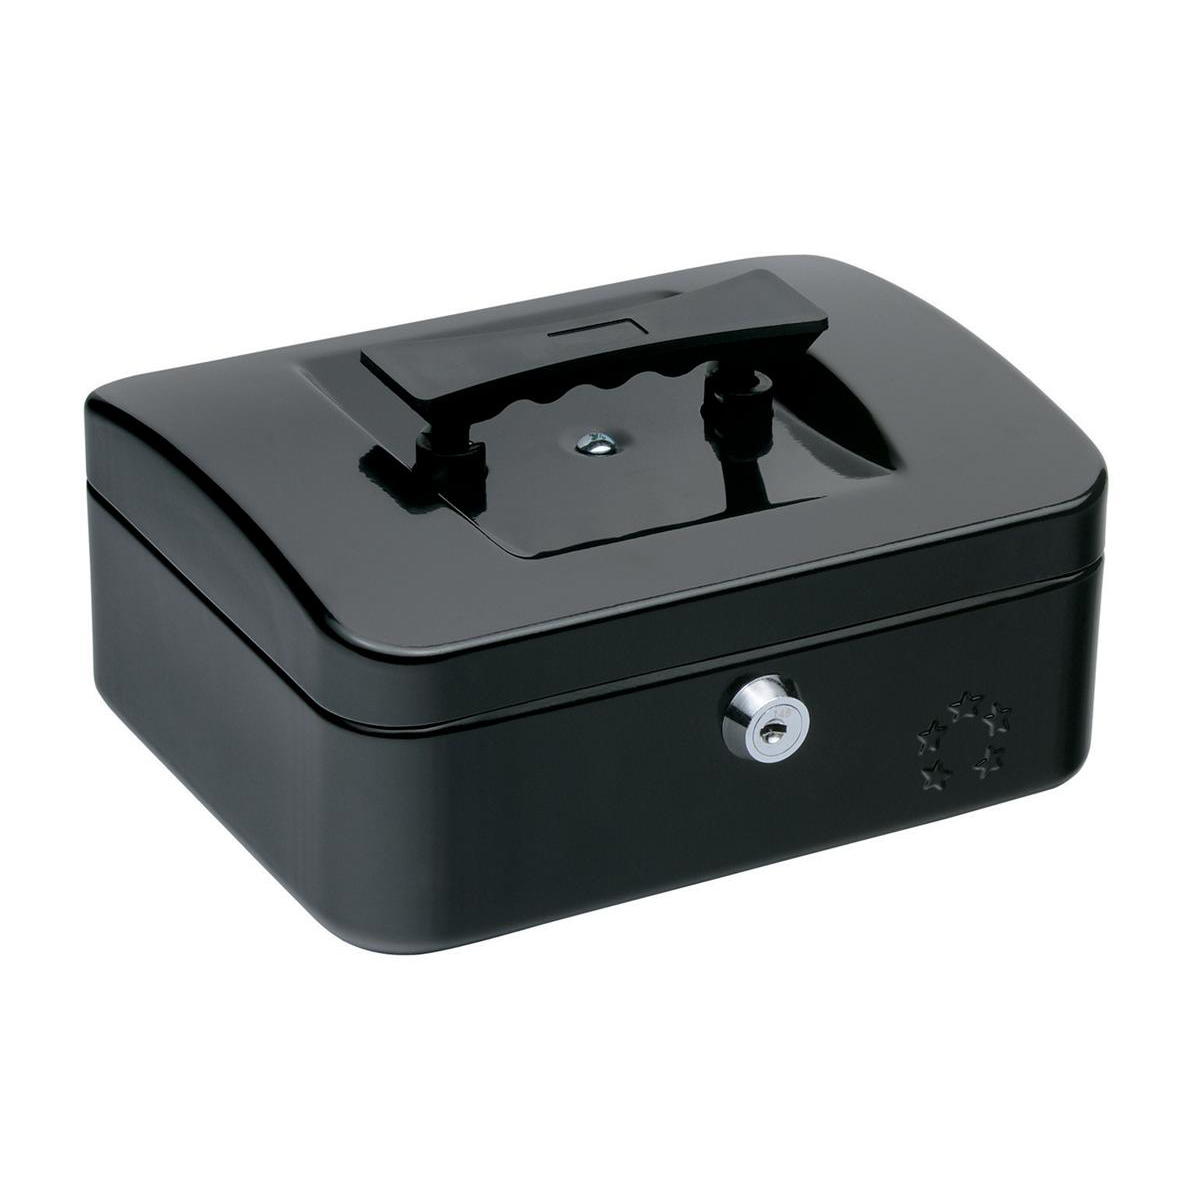 Cash or ticket boxes 5 Star Facilities Cash Box with 5-compartment Tray Steel Spring Lock 8 Inch W200xD160xH70mm Black